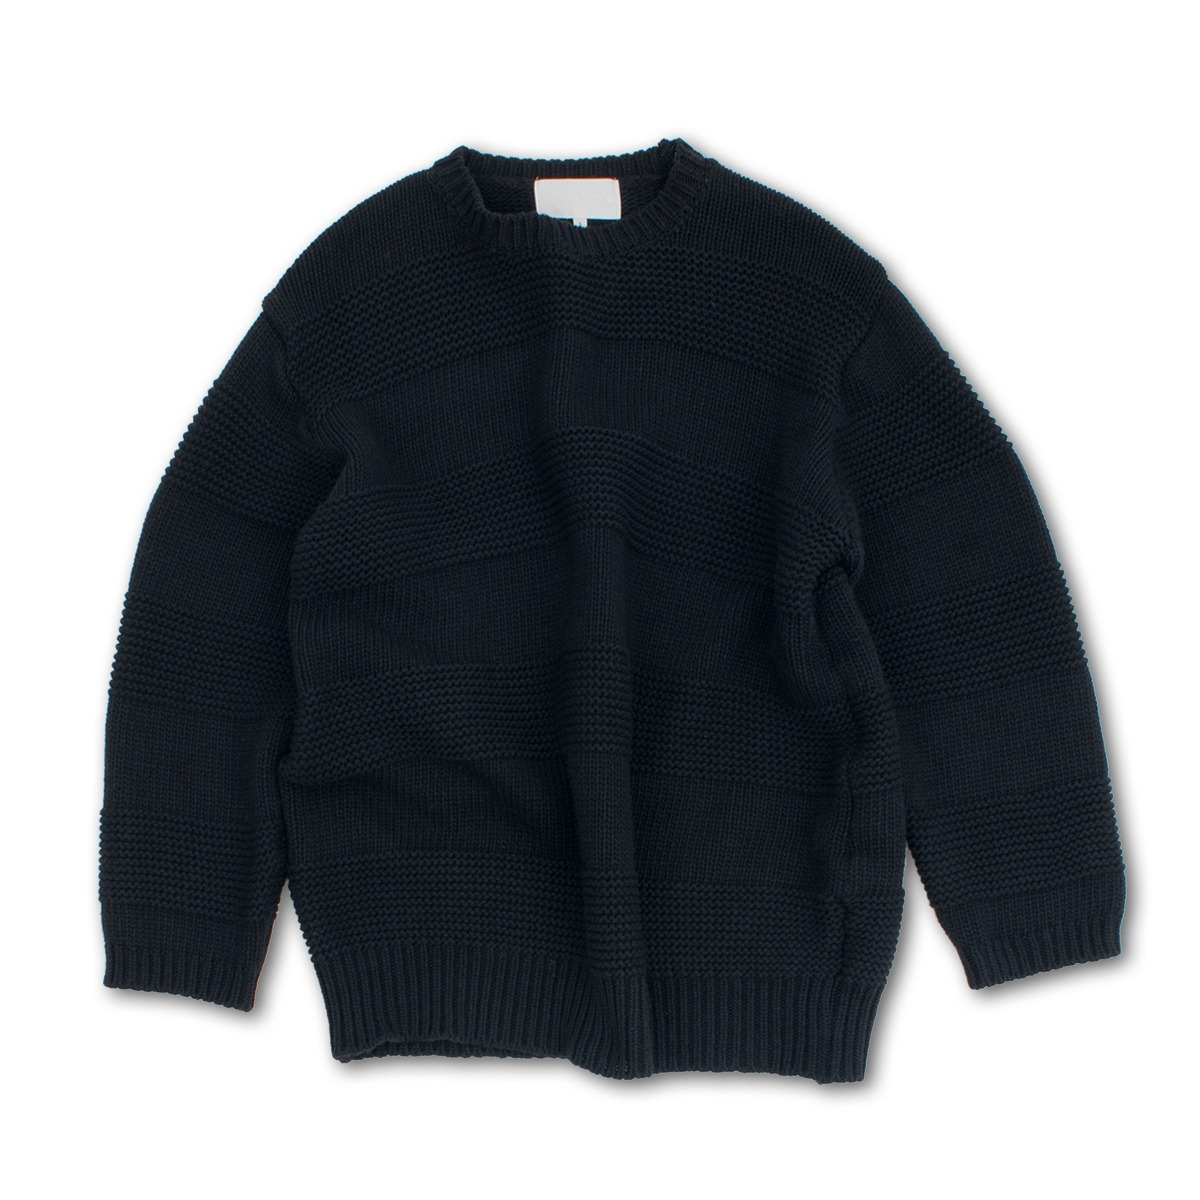 [GAKURO] CREWNECK SWEATER 'BLACK'